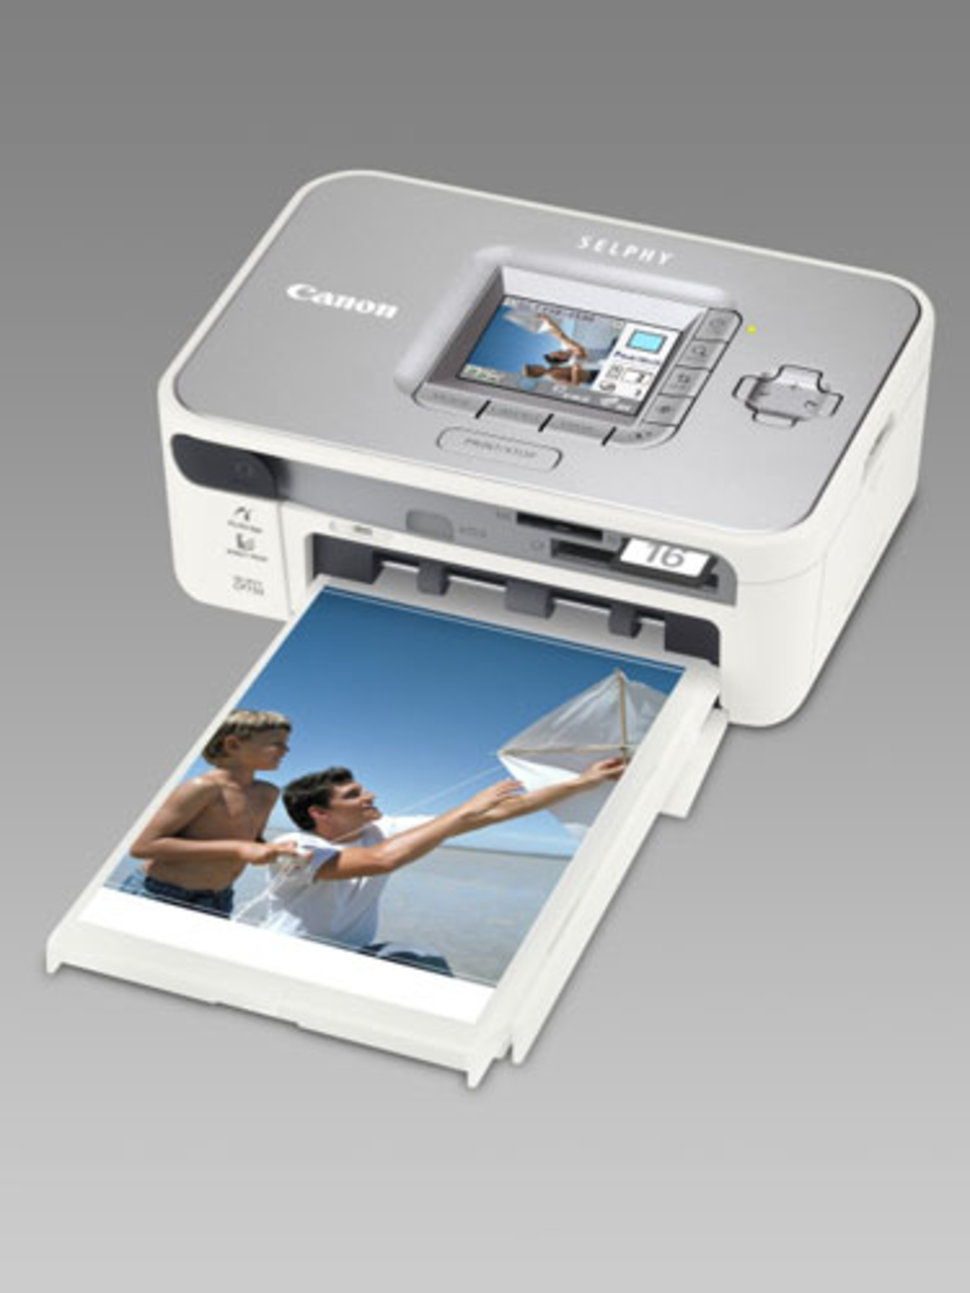 CANON CP750 PRINTER WINDOWS XP DRIVER